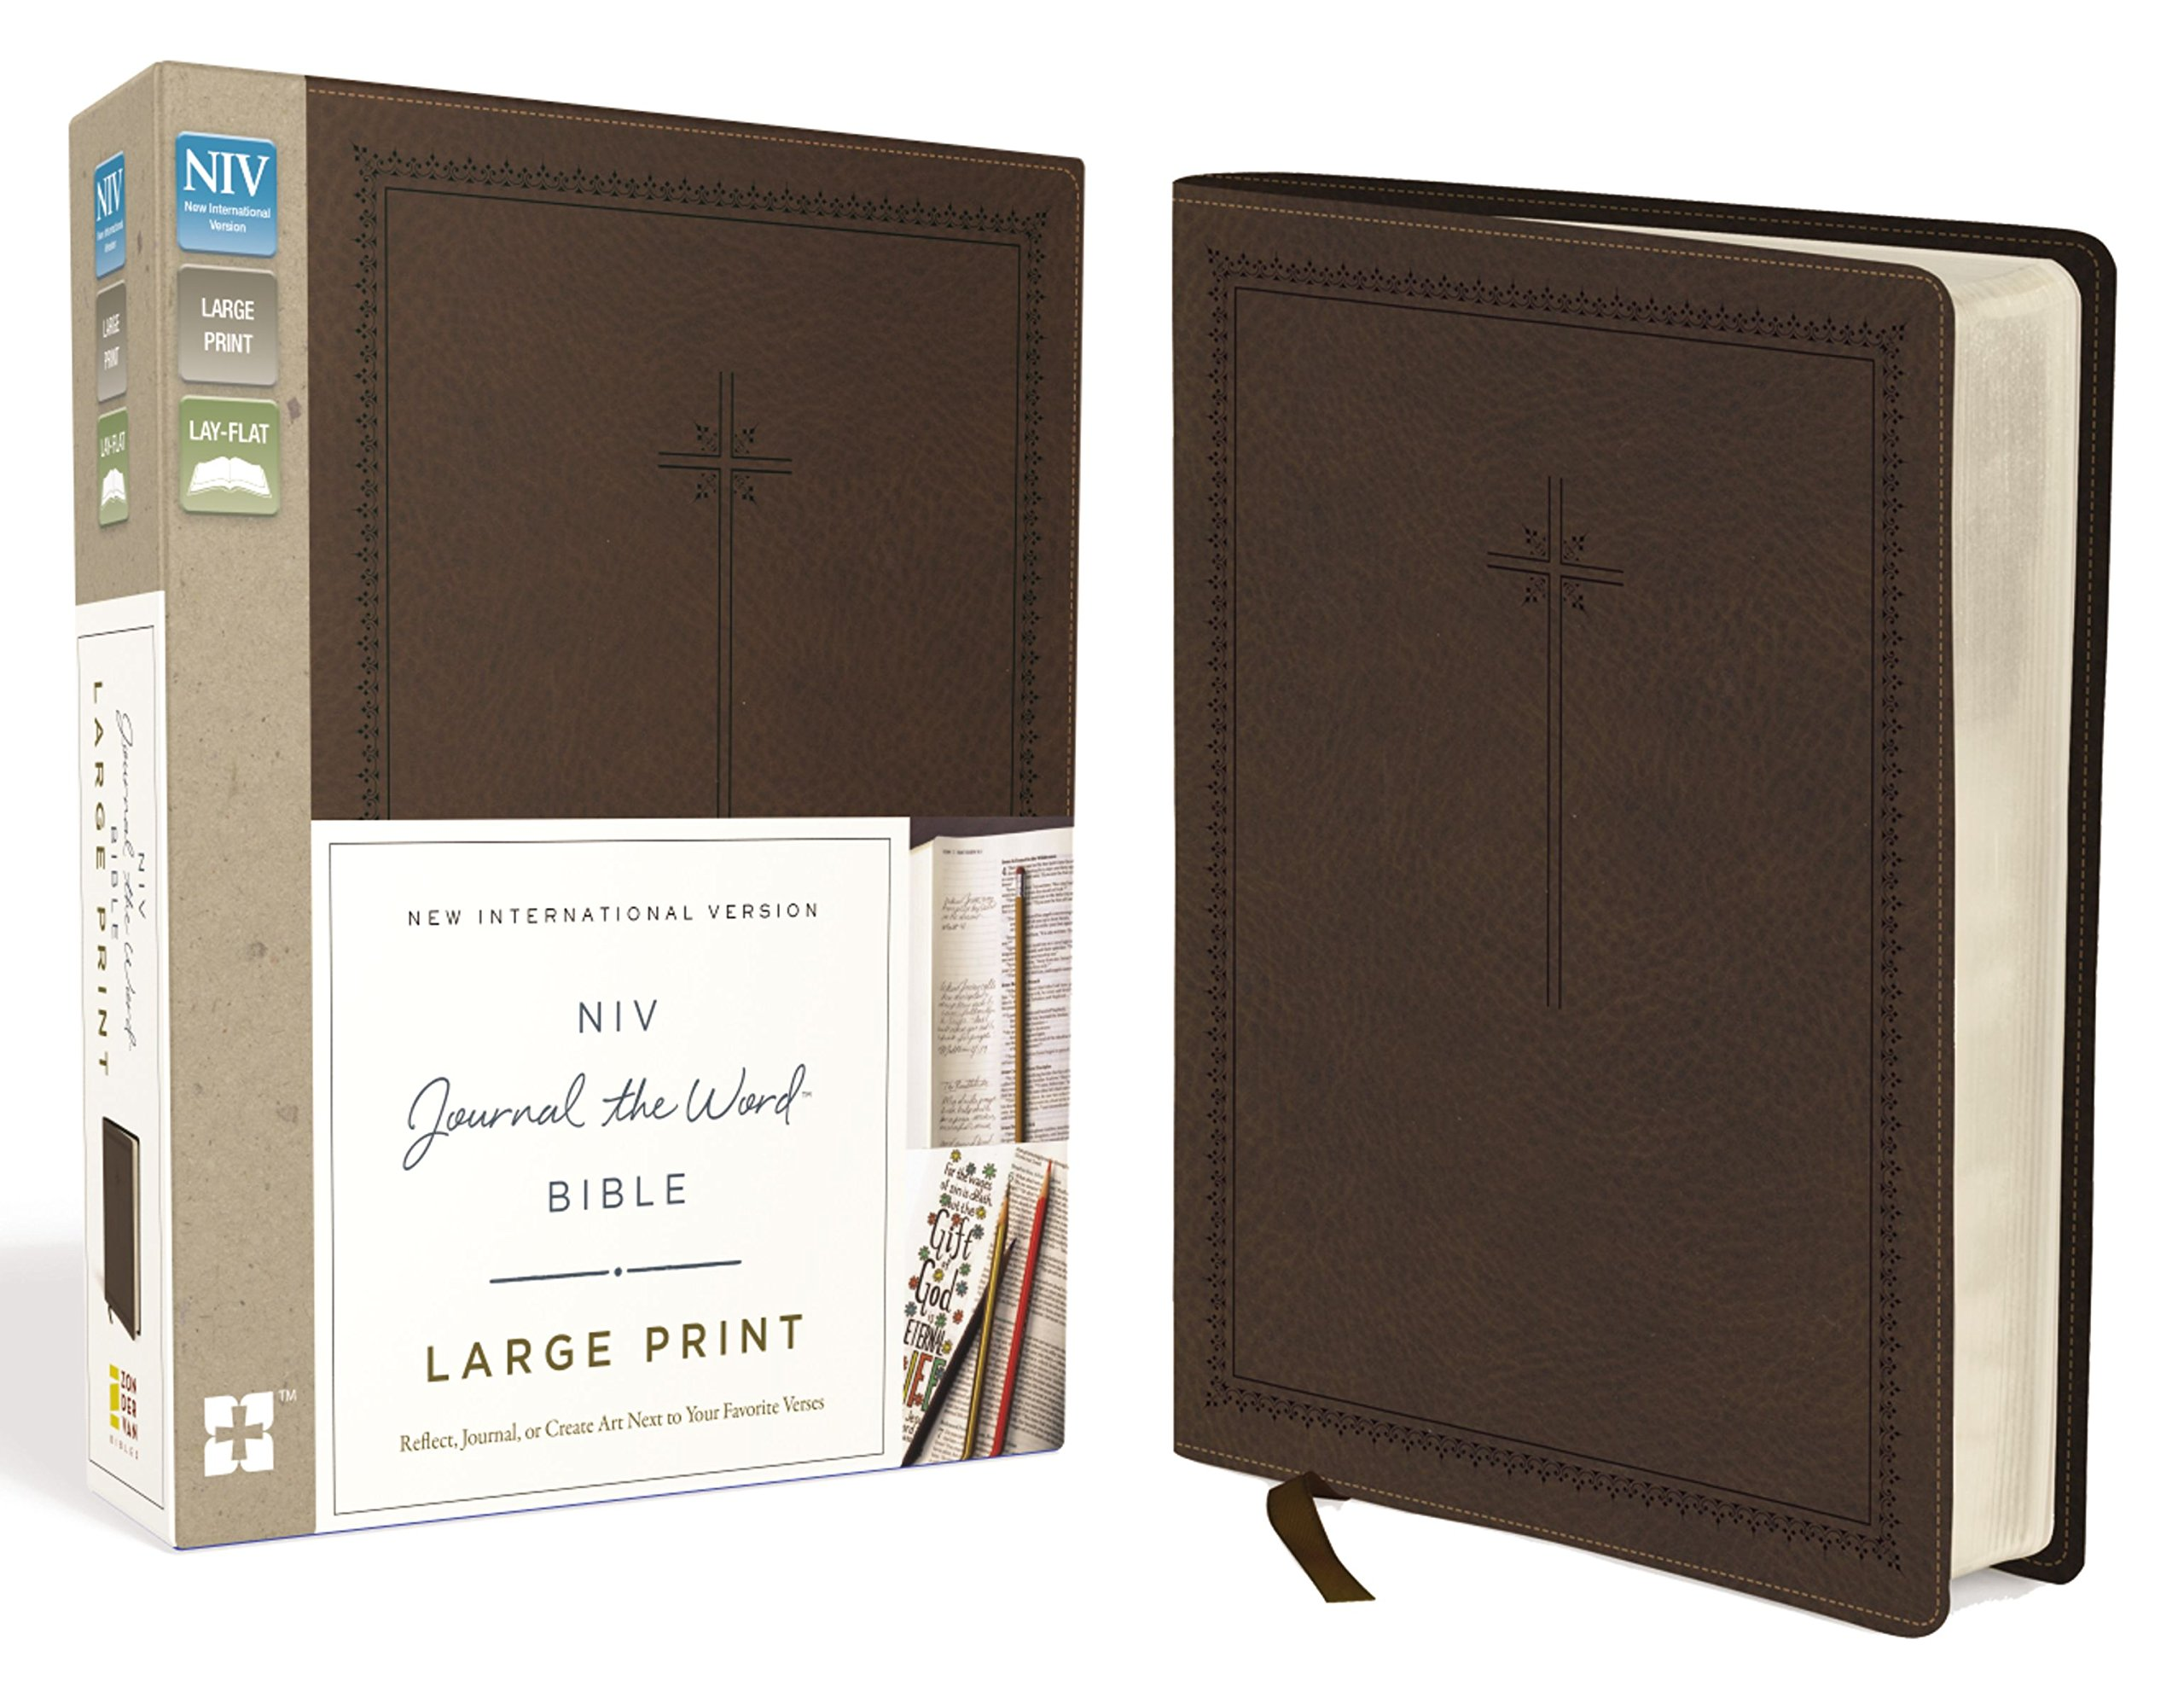 NIV, Journal the Word Bible, Large Print, Leathersoft, Brown: Reflect, Journal, or Create Art Next to Your Favorite Verses